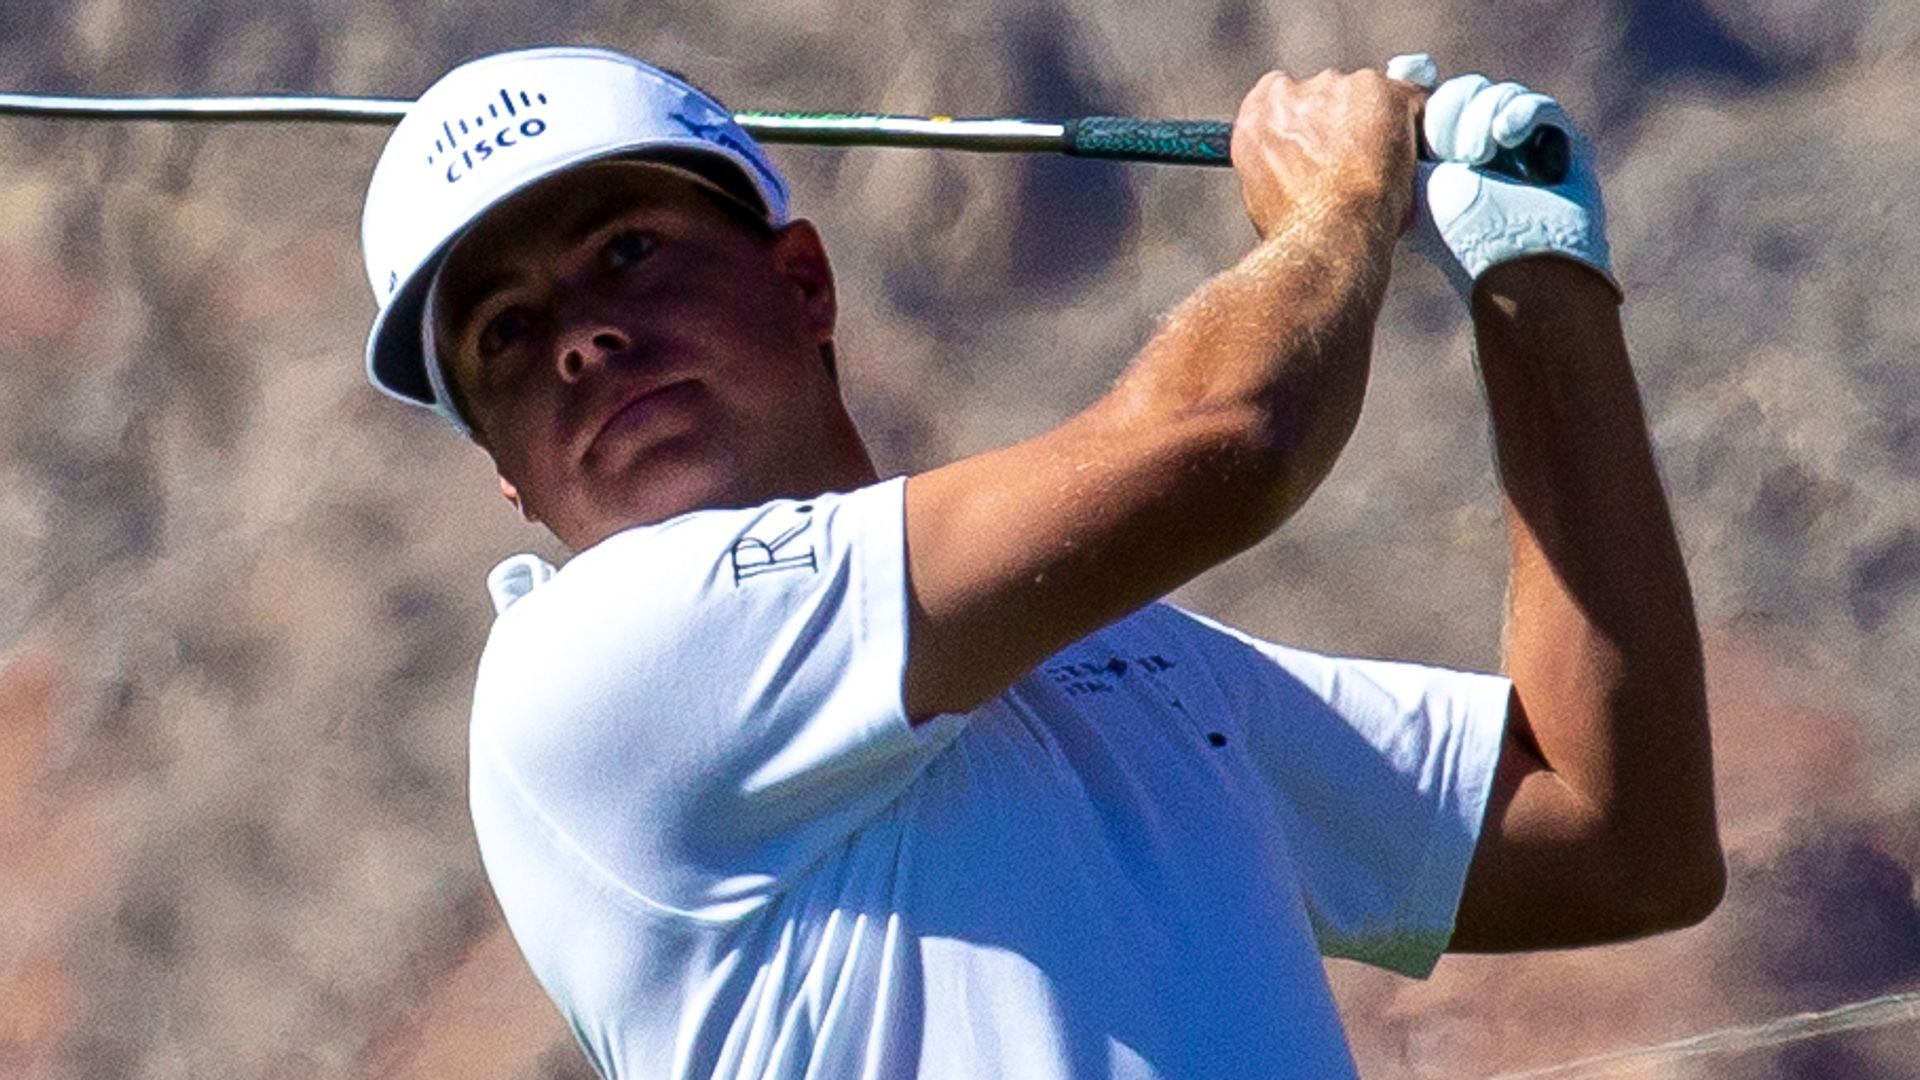 Mitchell inspired by McIlroy, storms five clear